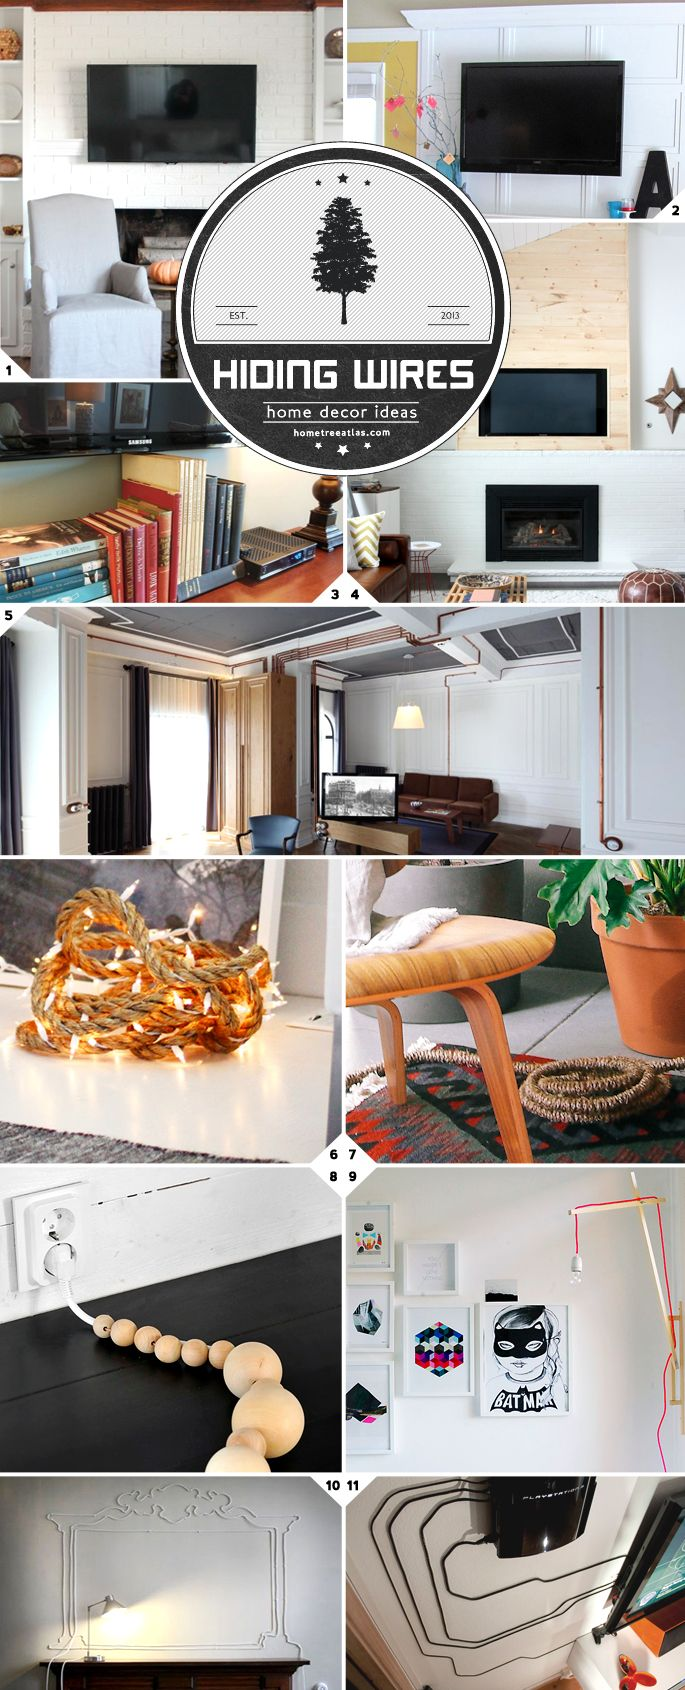 Creative Ideas: How To Hide Cords and Wires. || Simple and heavy duty ideas for hiding your TV wires, lamp cords, and wires on the wall or on the floor. There are also some ideas on how to embrace and turn wires into decor pieces (ie. use copper pipes)